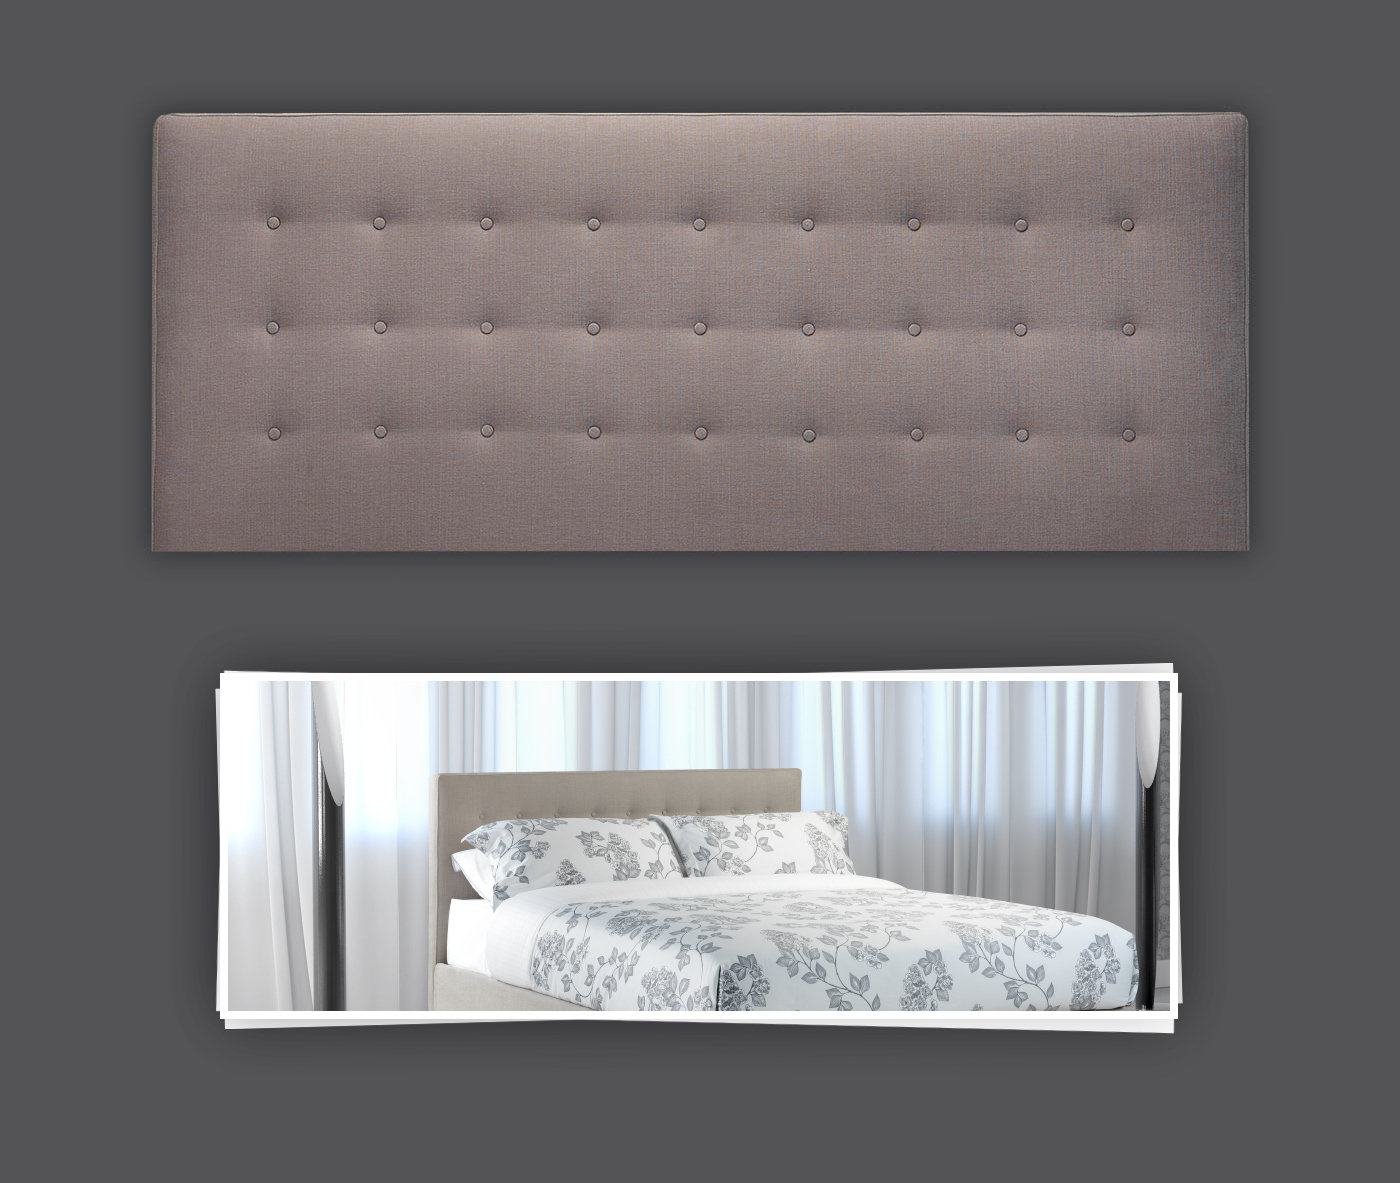 elegant h cheap your headboards where bedroom clearance ideas design queen headboard for unique buy cool sale bed to